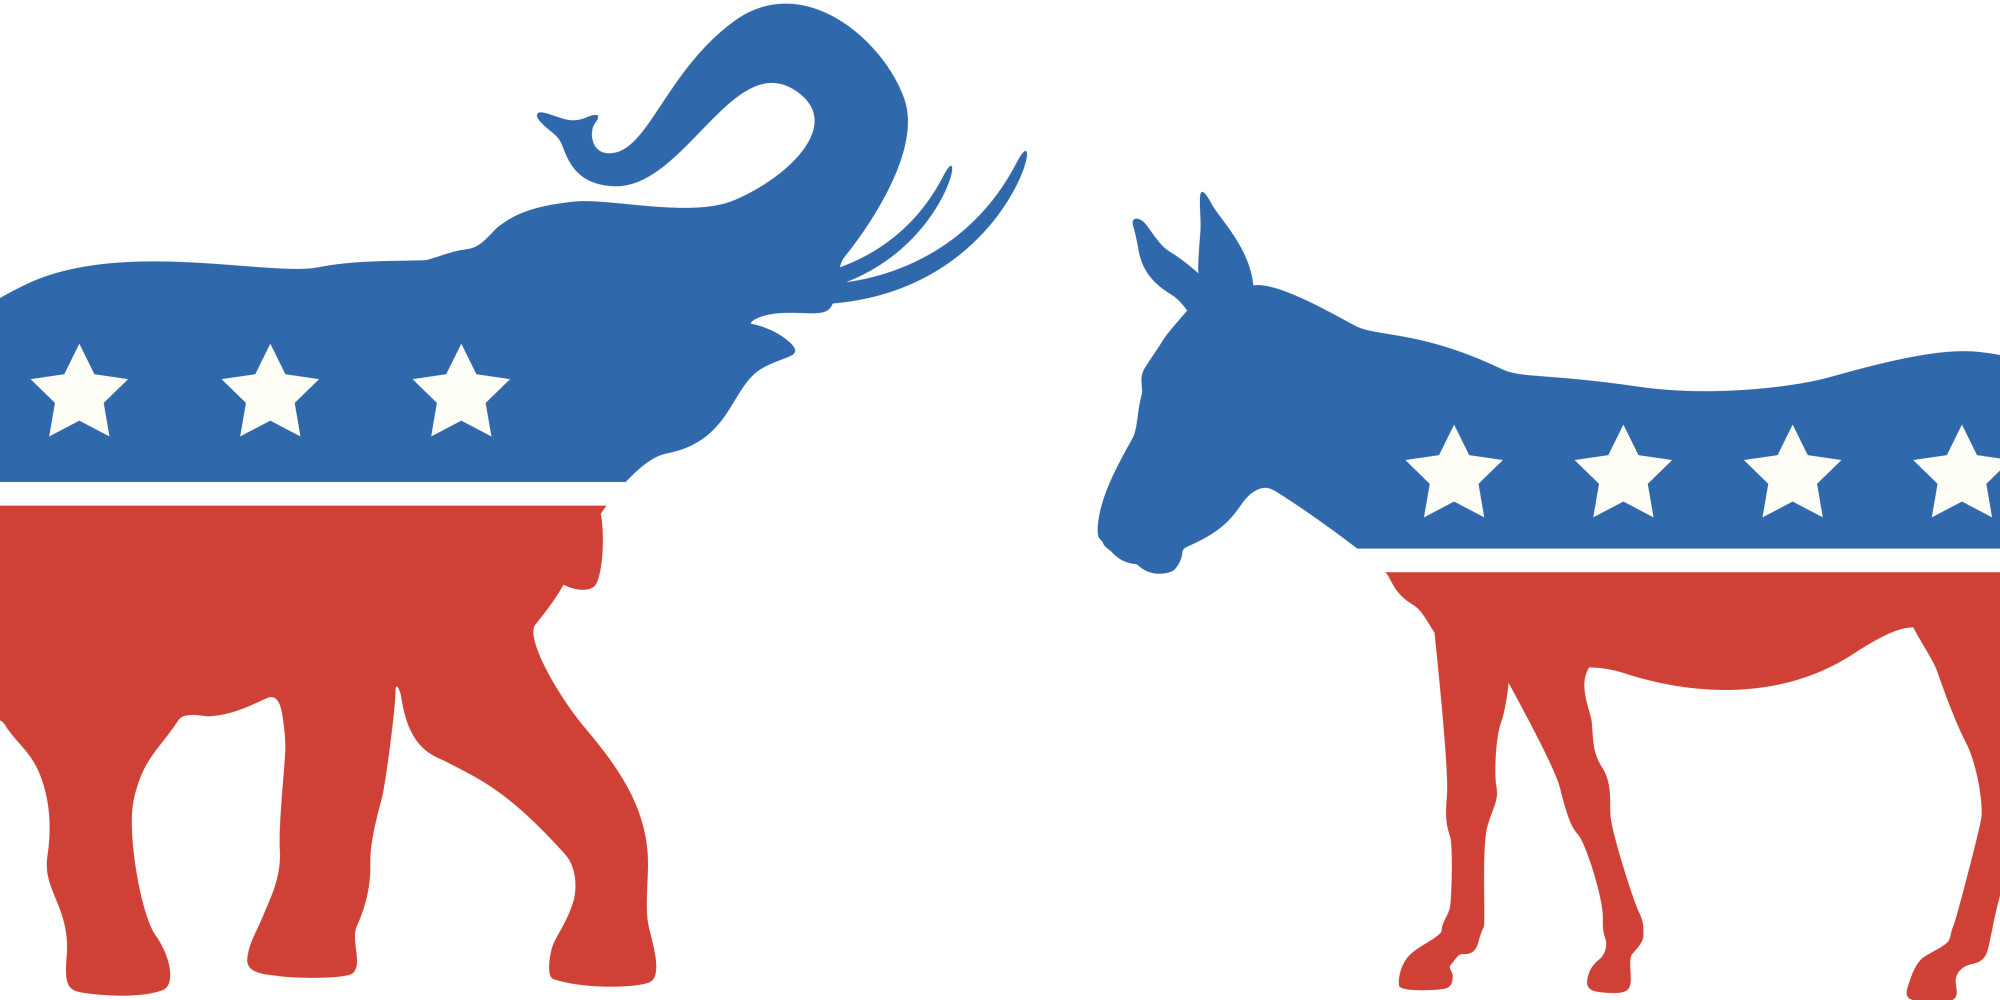 Shiloh Musings: Republicans More Pro-Israel than Democrats